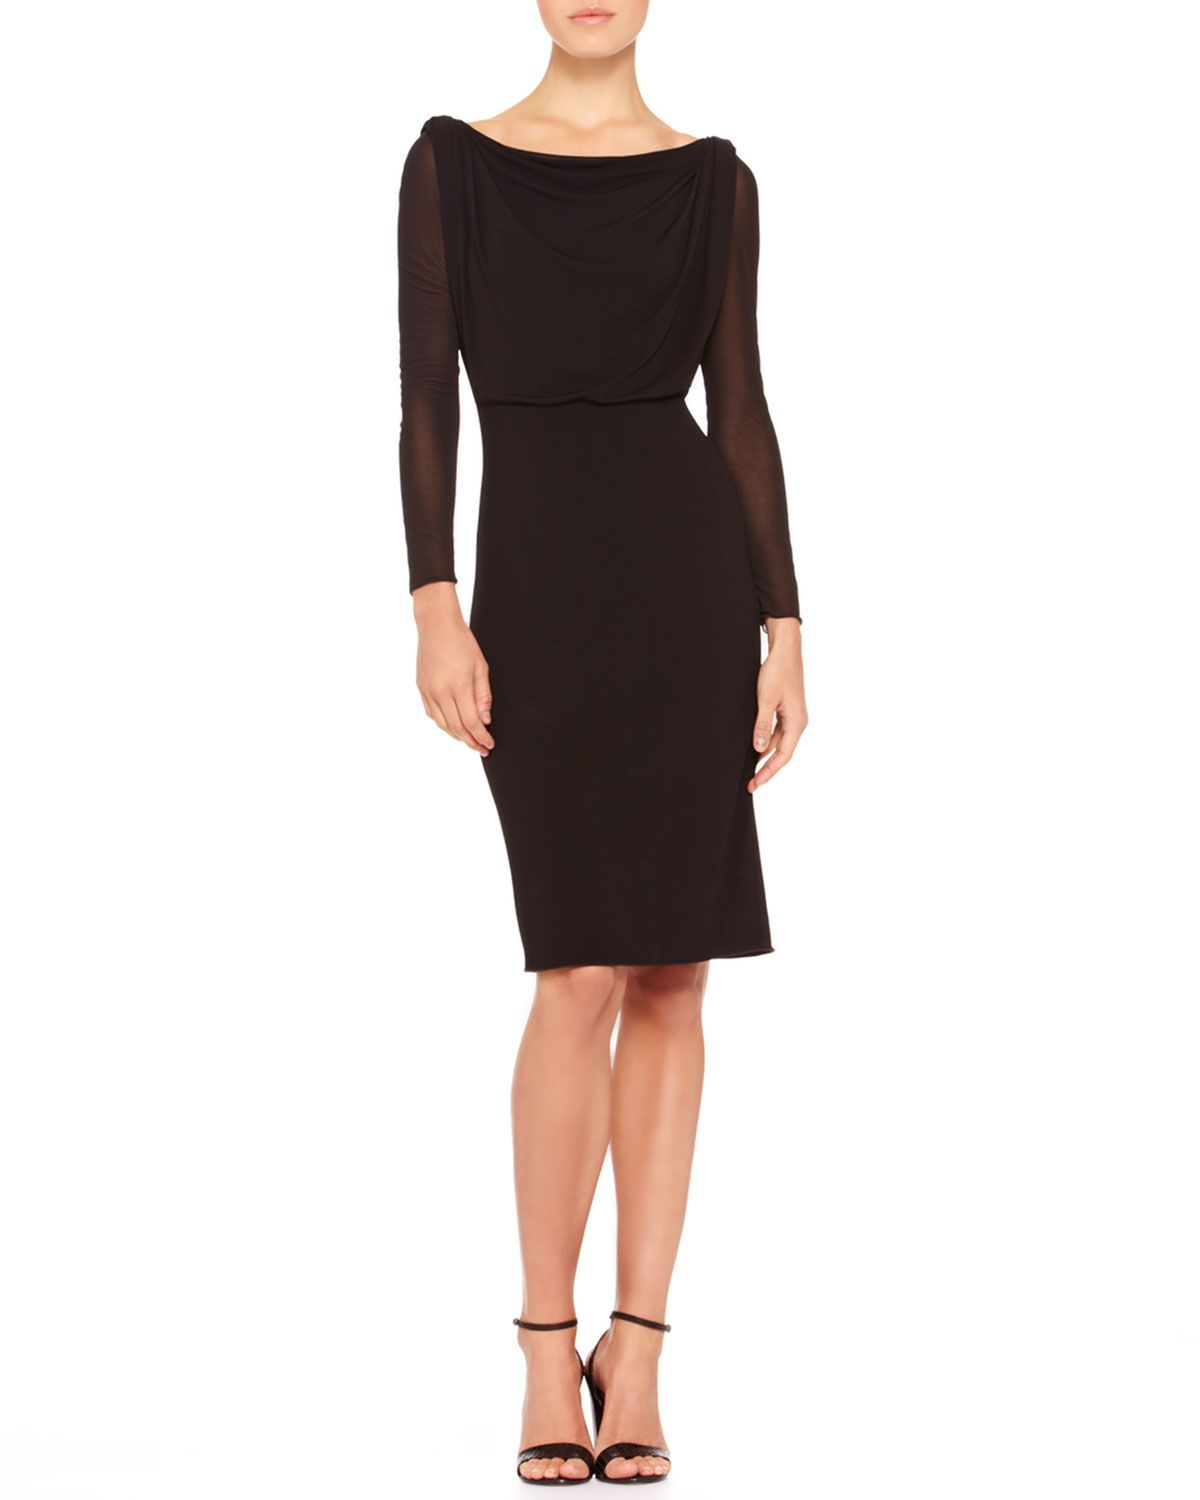 Armani Collezioni Fitted Sheer-Sleeve Dress - Neiman Marcus | #07 ...